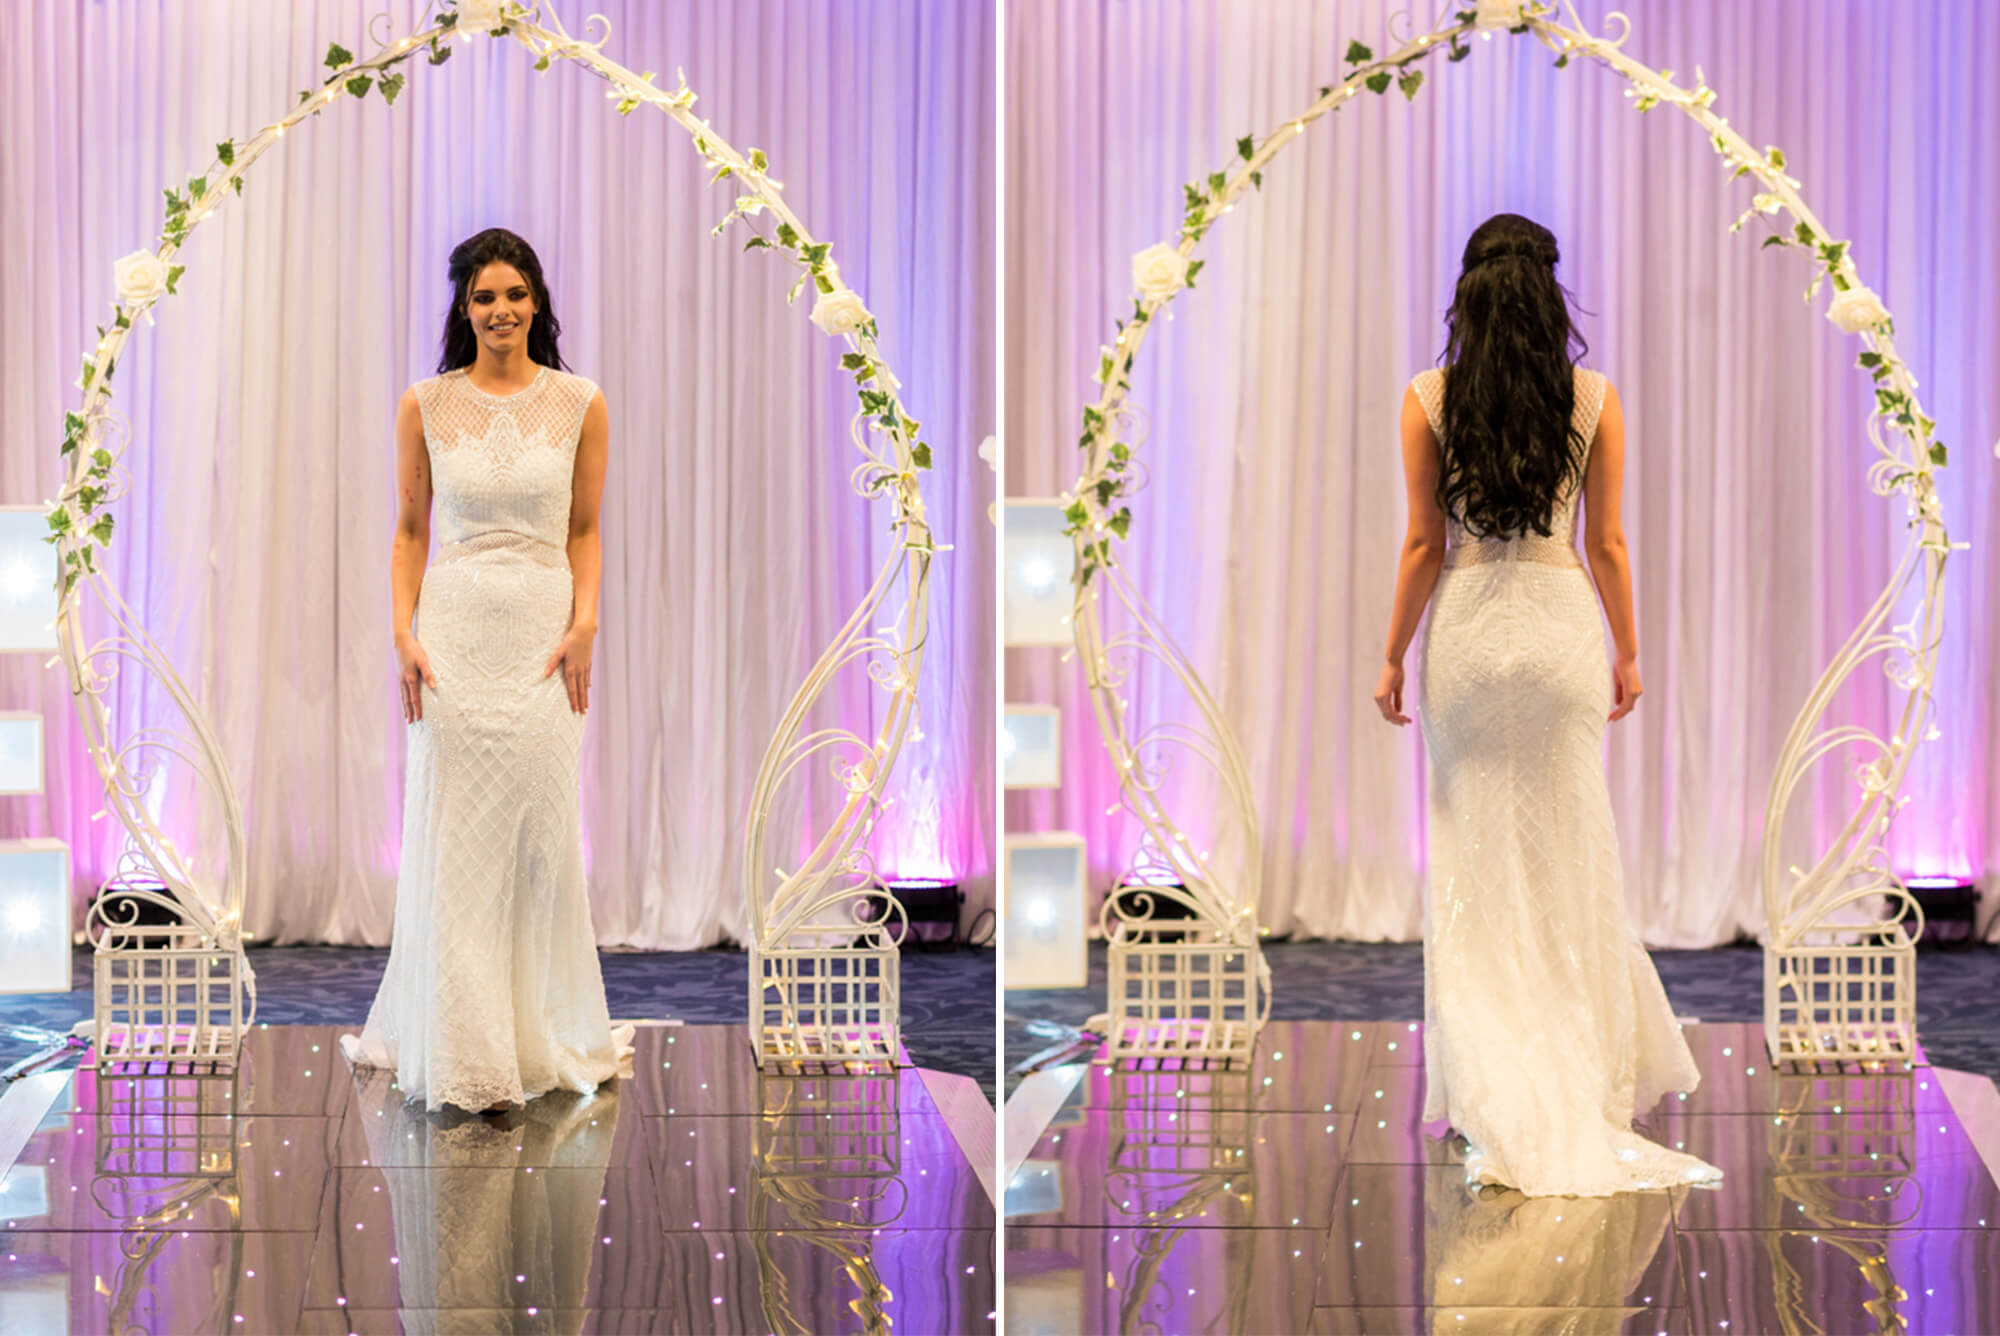 Bride waking down catwalk at Edinburgh Wedding Show